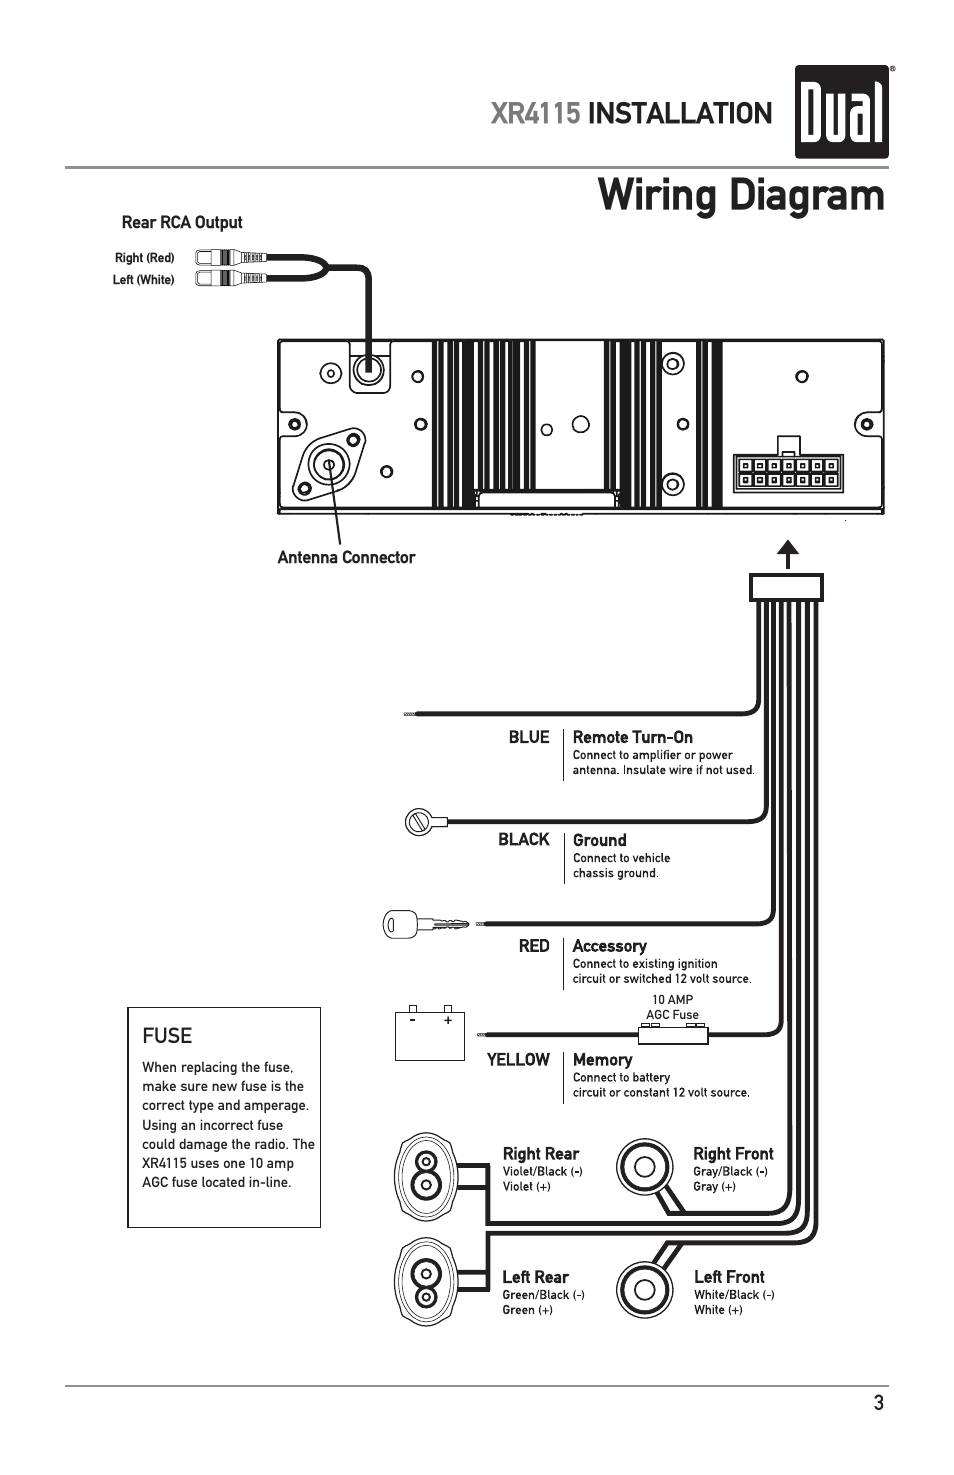 Dual Xd7500 Wiring Diagram from www.manualsdir.com